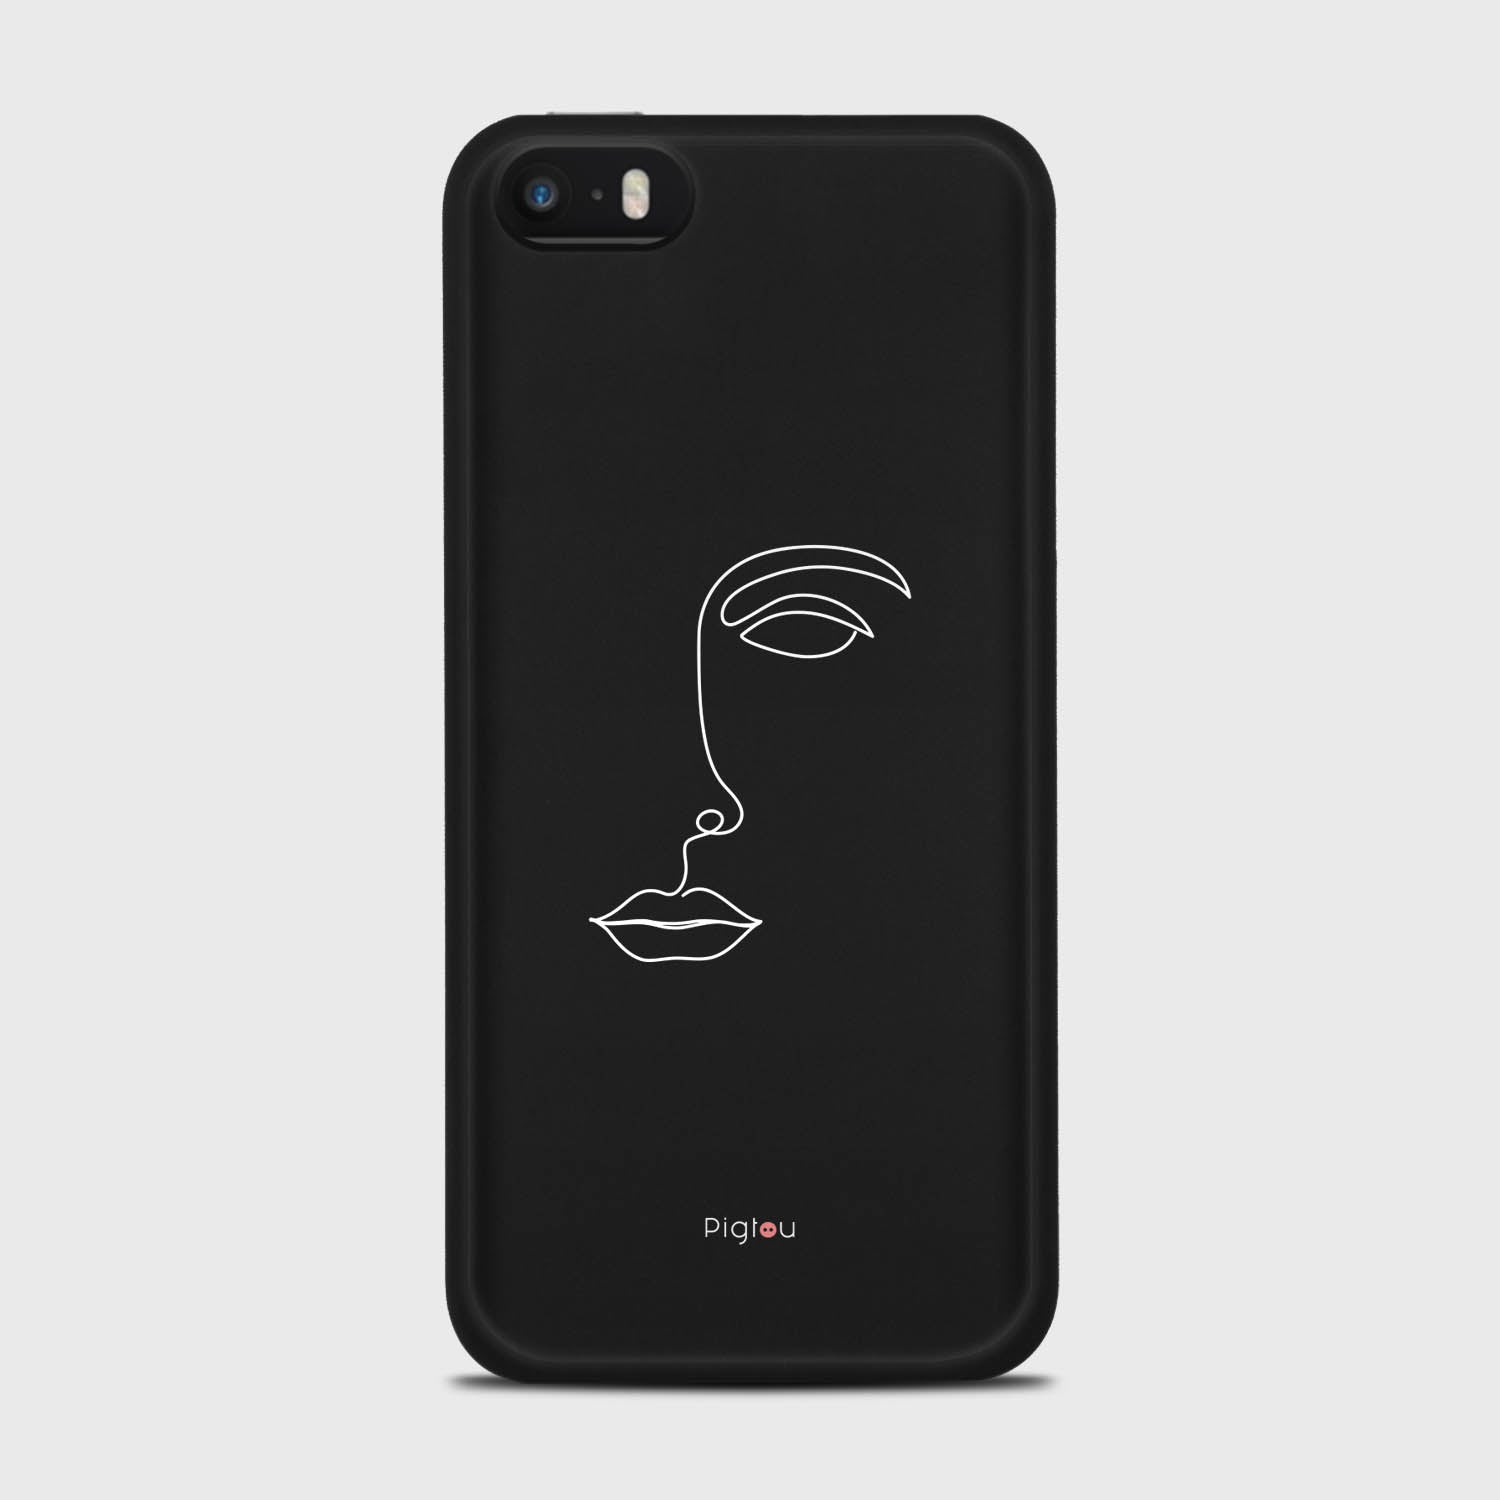 Silhouette De Visage Coque Iphone 5S